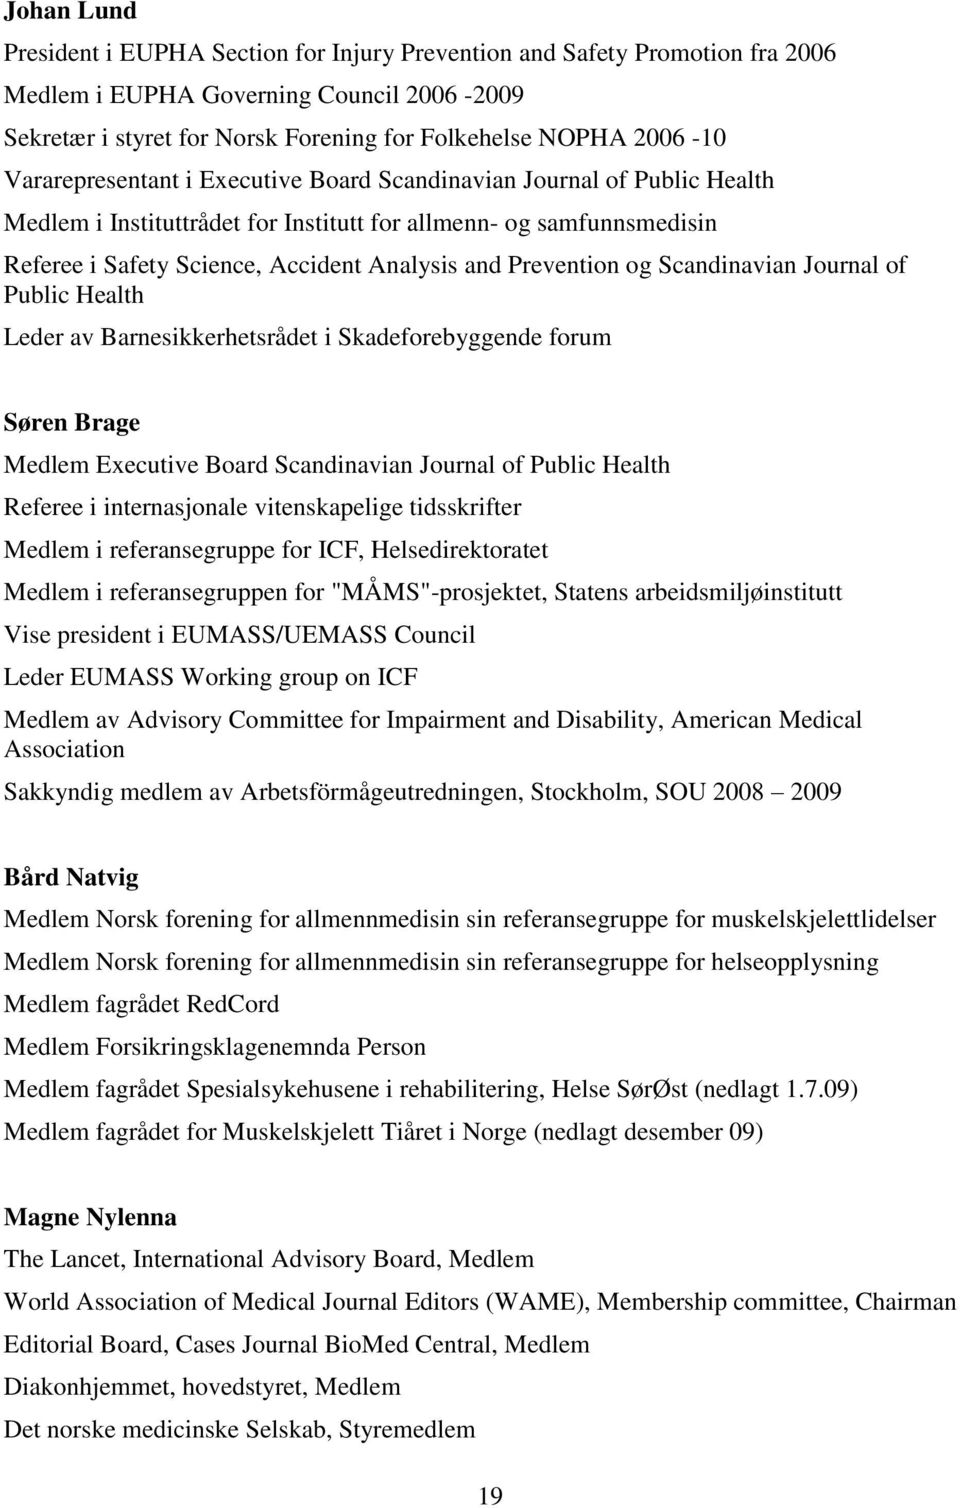 Prevention og Scandinavian Journal of Public Health Leder av Barnesikkerhetsrådet i Skadeforebyggende forum Søren Brage Medlem Executive Board Scandinavian Journal of Public Health Referee i